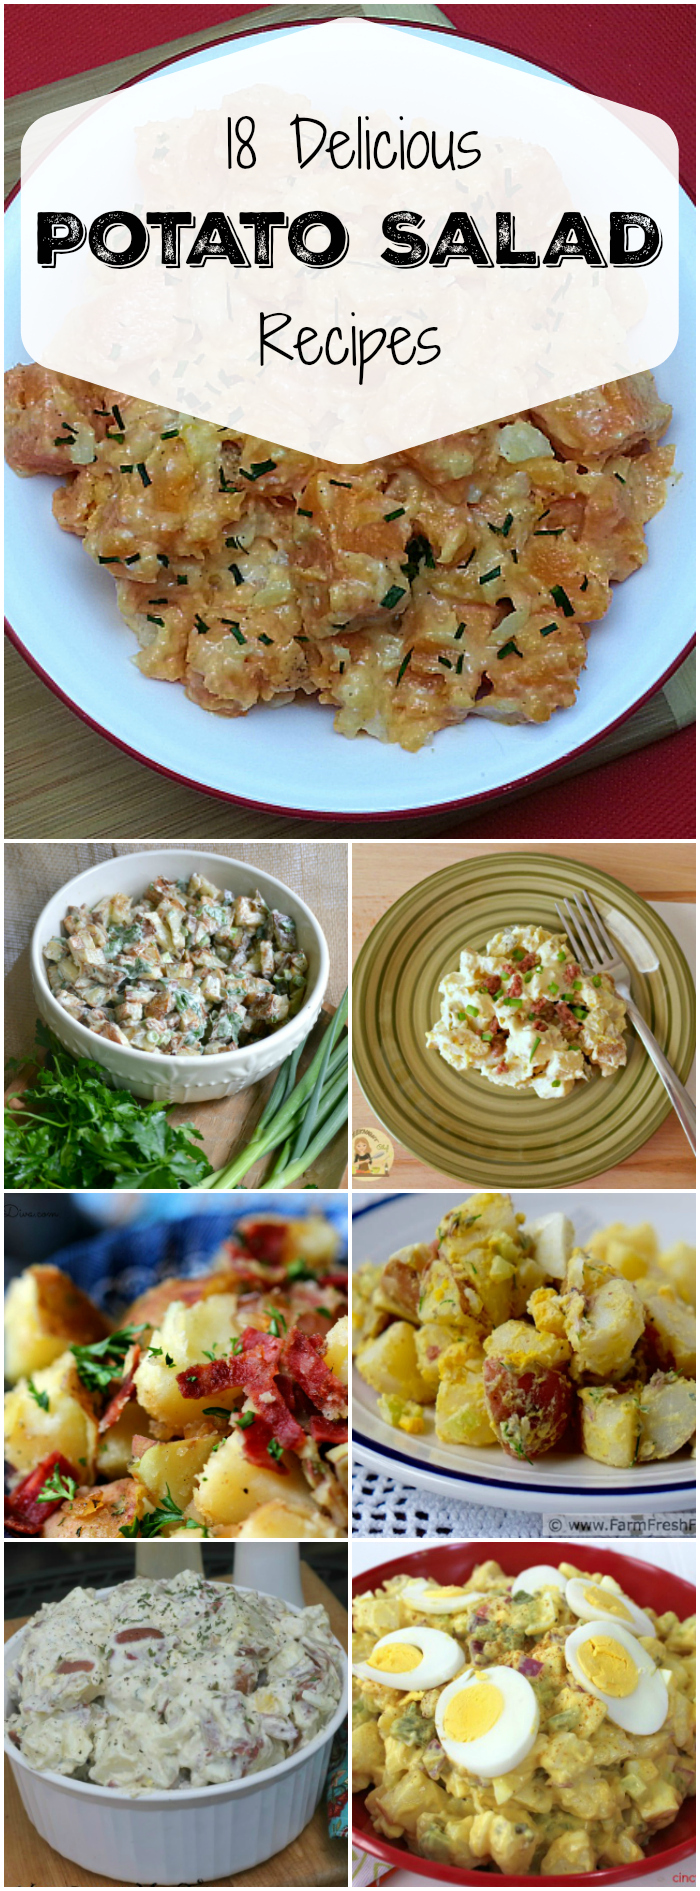 18 Delicious Potato Salad Recipes - Food Blogger Recipe Round Up